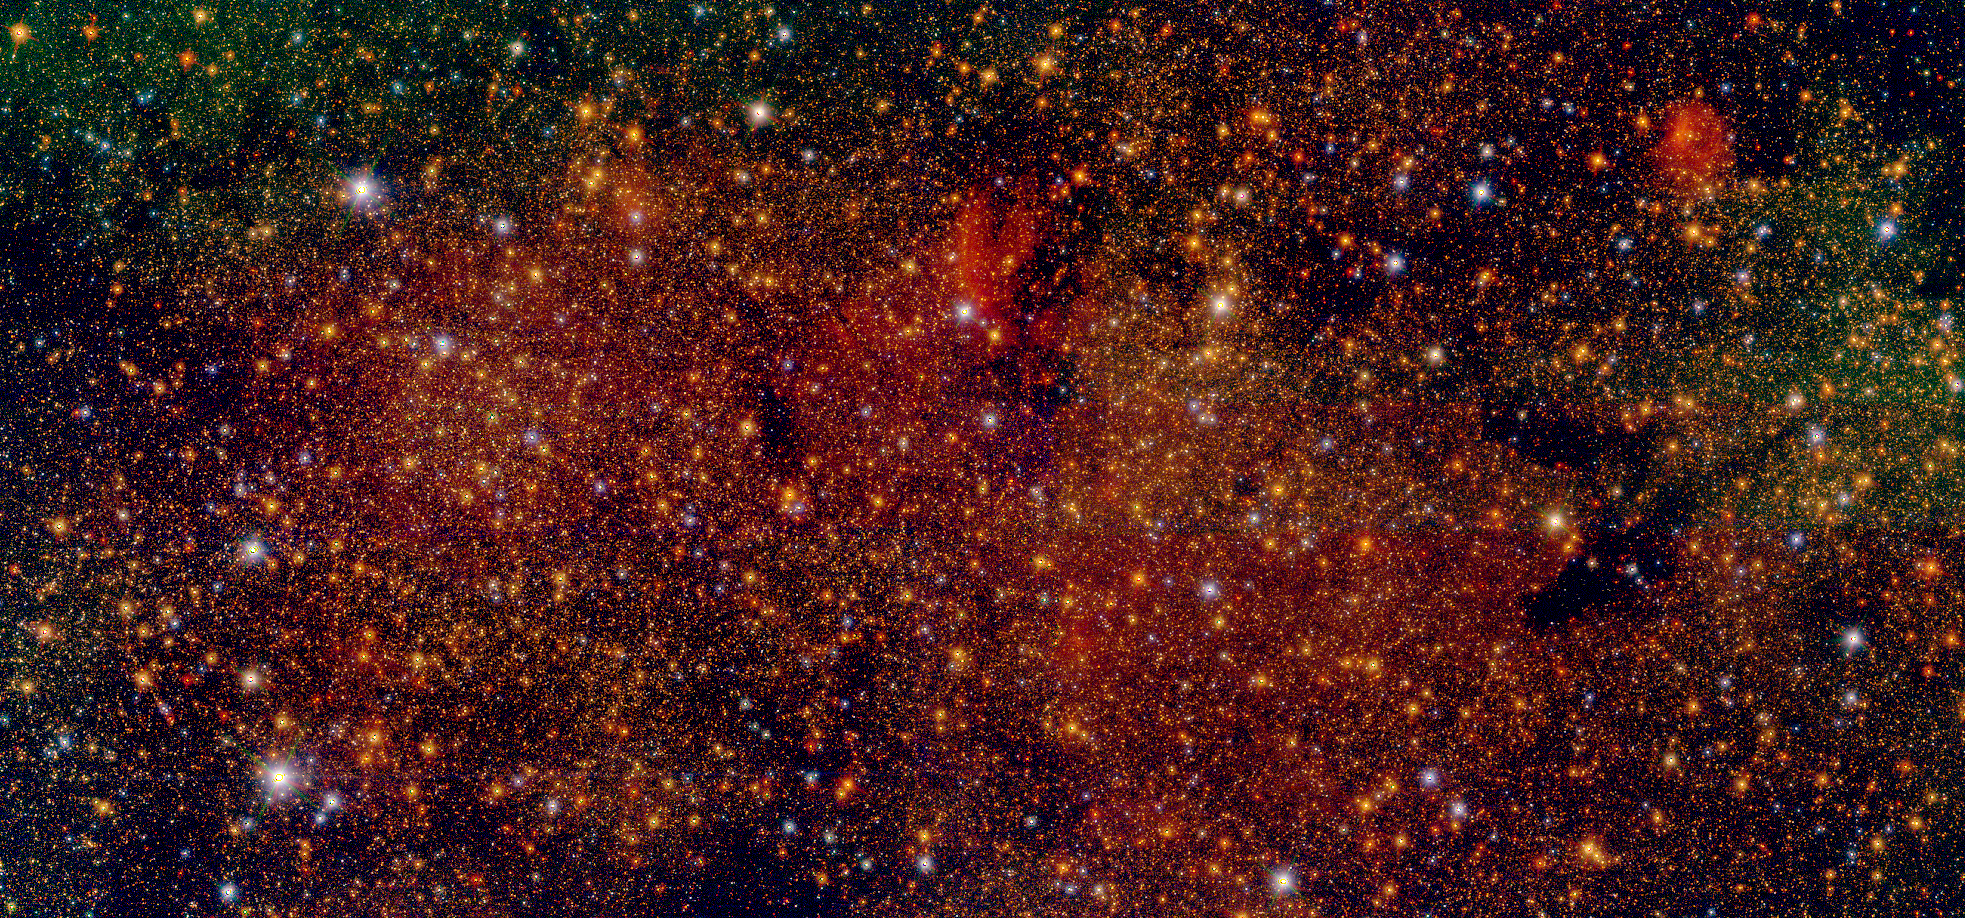 The first results of the GALACTICNUCLEUS project, the most detailed star catalogue of the galactic centre, are published